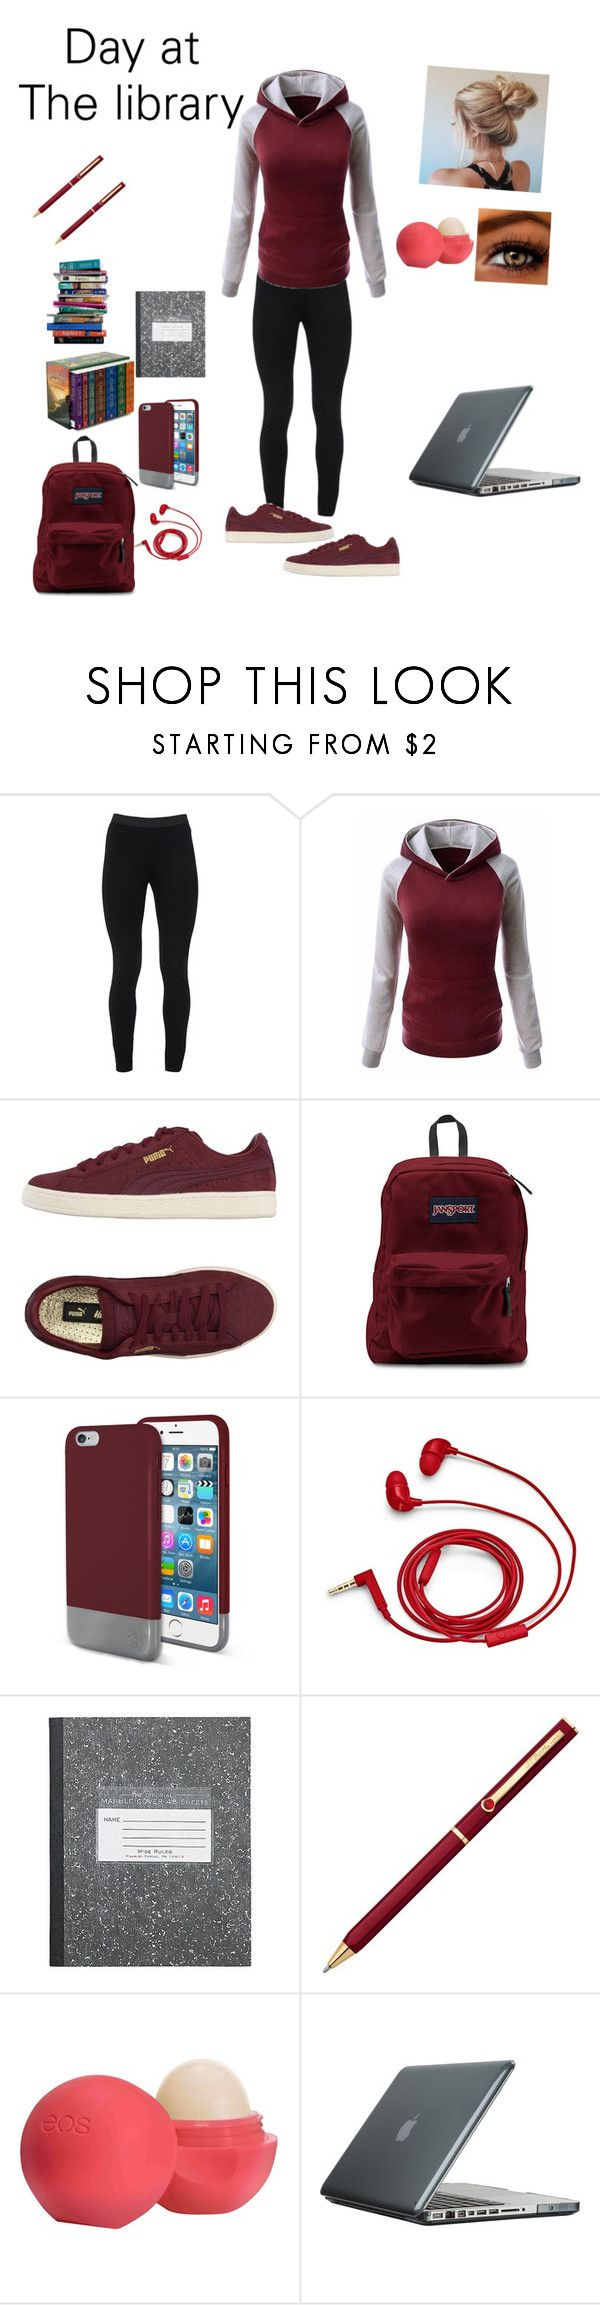 """""""Day At The Library"""" by shawnia-selinia-thomas ❤ liked on Polyvore featuring Peace of Cloth, Puma, Original Penguin, FOSSIL, S.T. Dupont, Eos, Speck and 7 For All Mankind"""